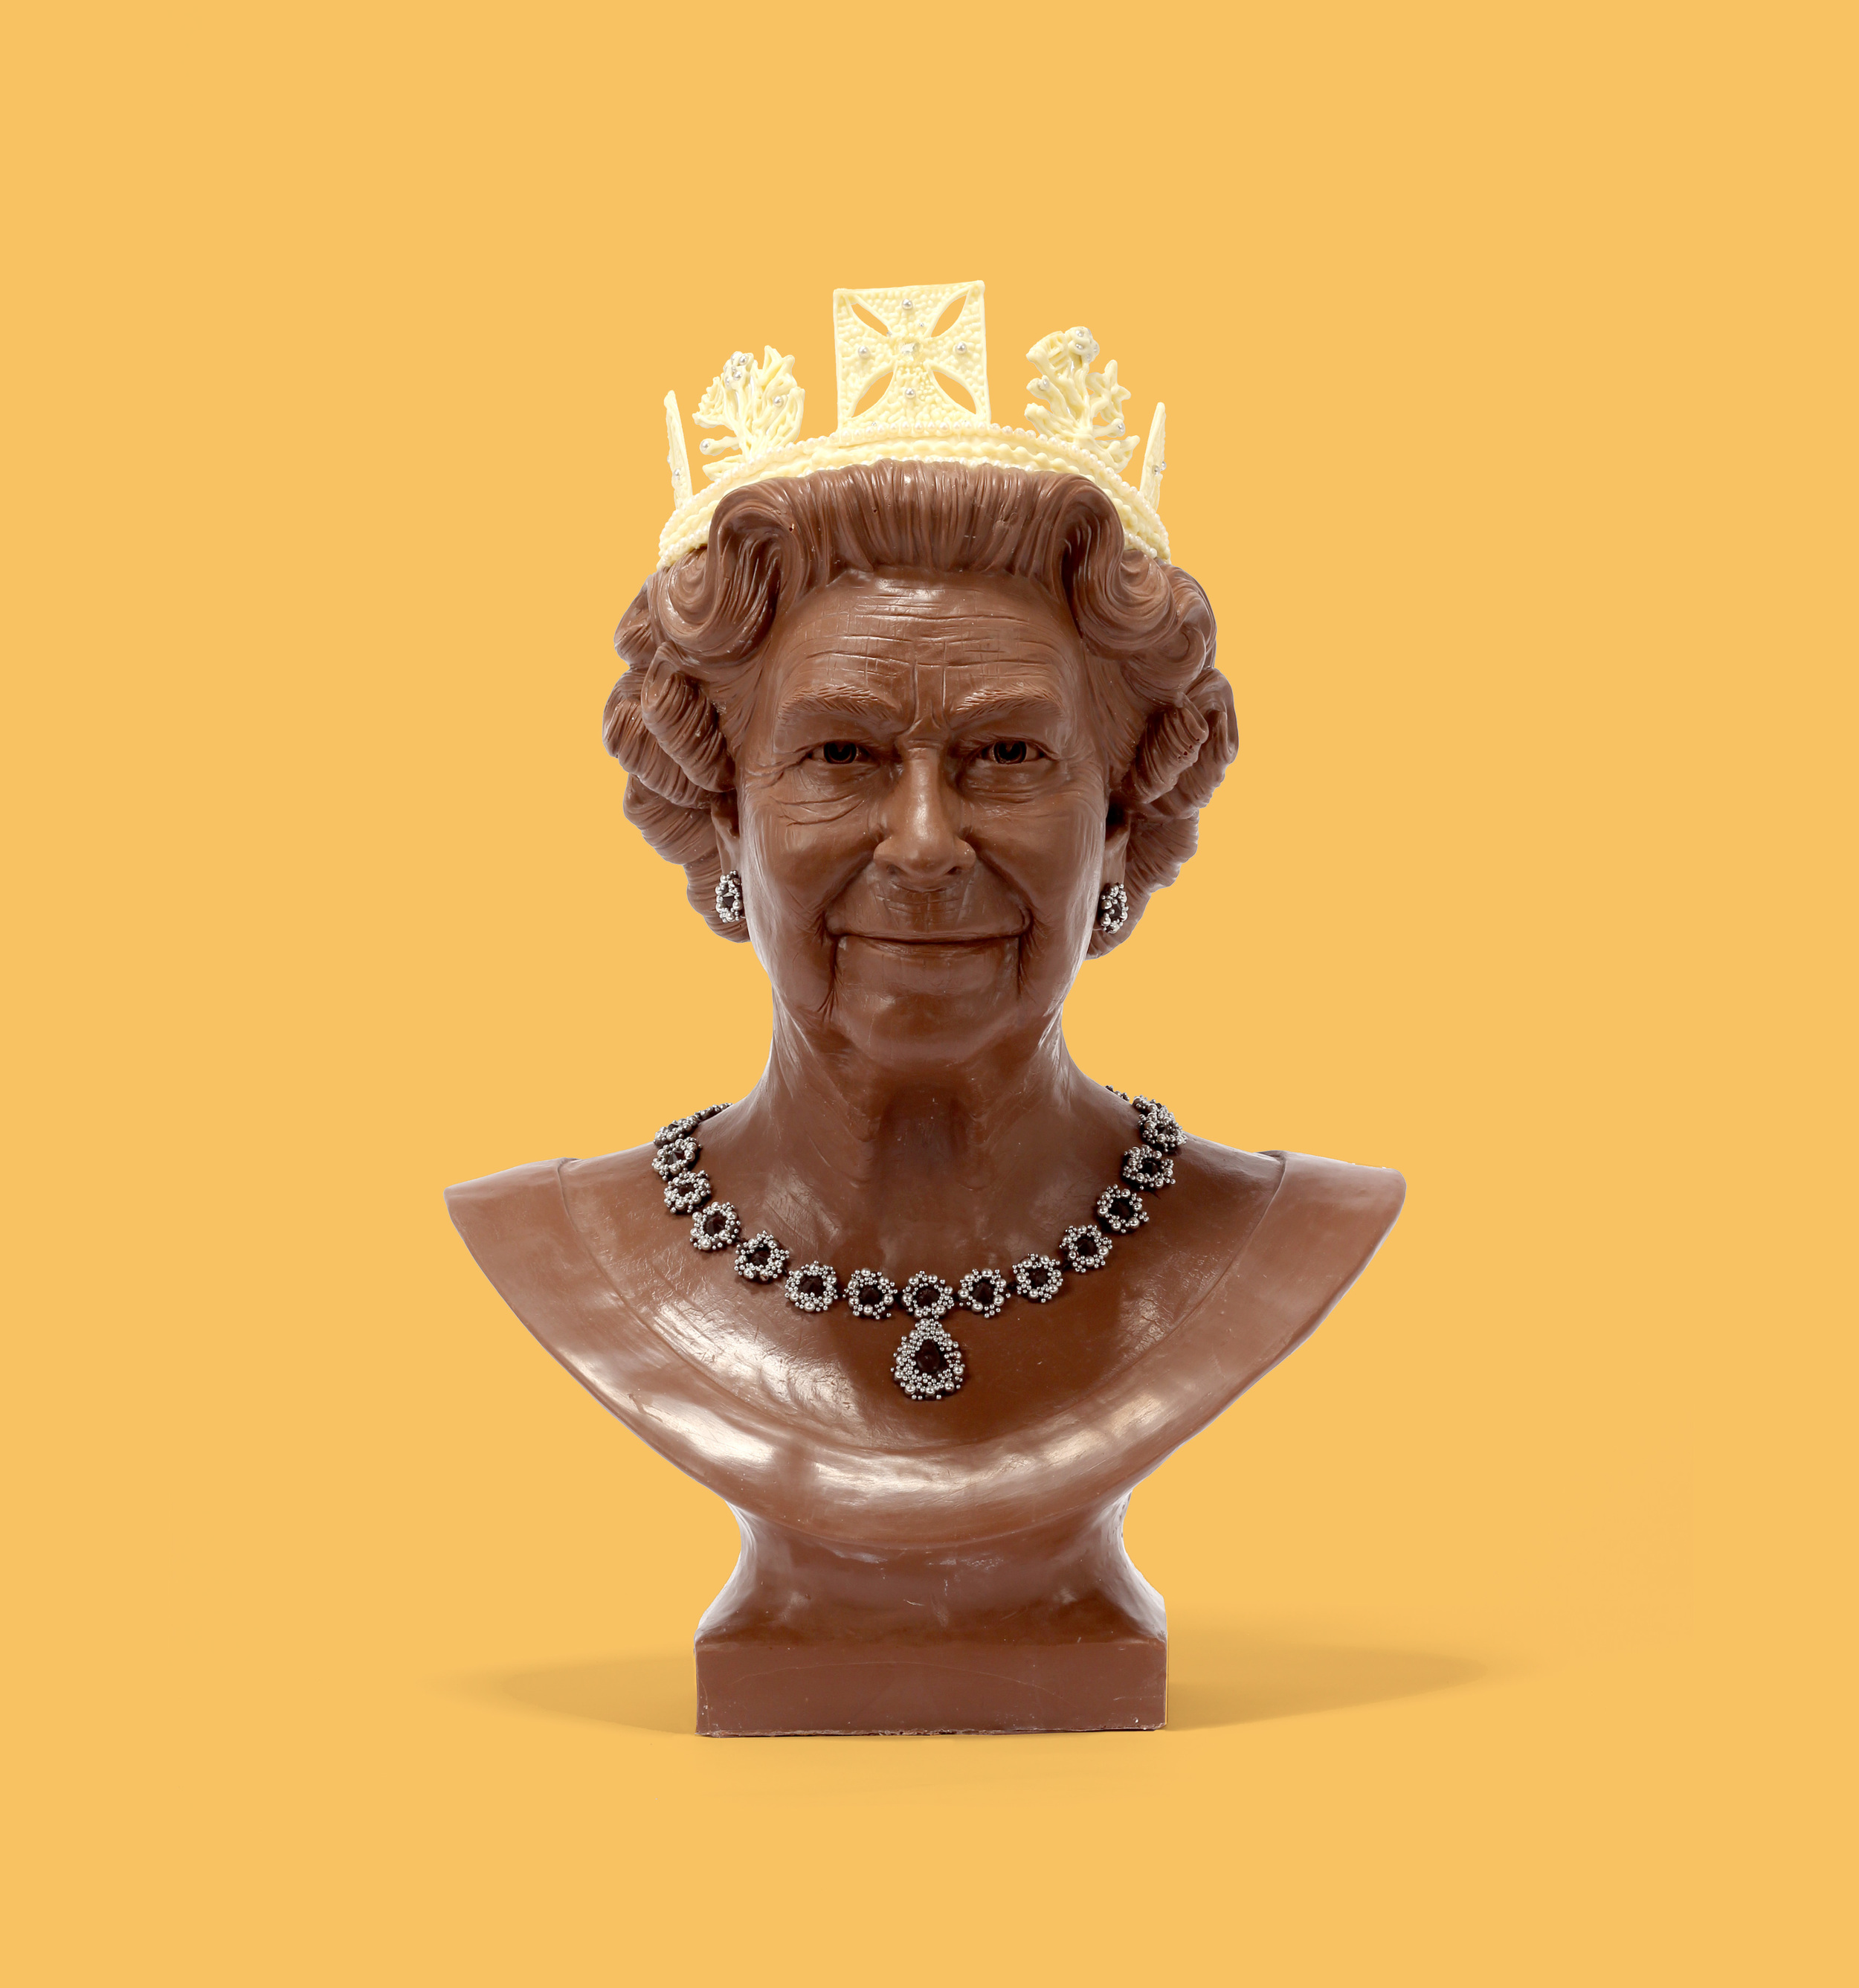 Milk chocolate Queen Elizabeth ll adorned with white chocolate diamond diadem crown and silver dragee jewels.